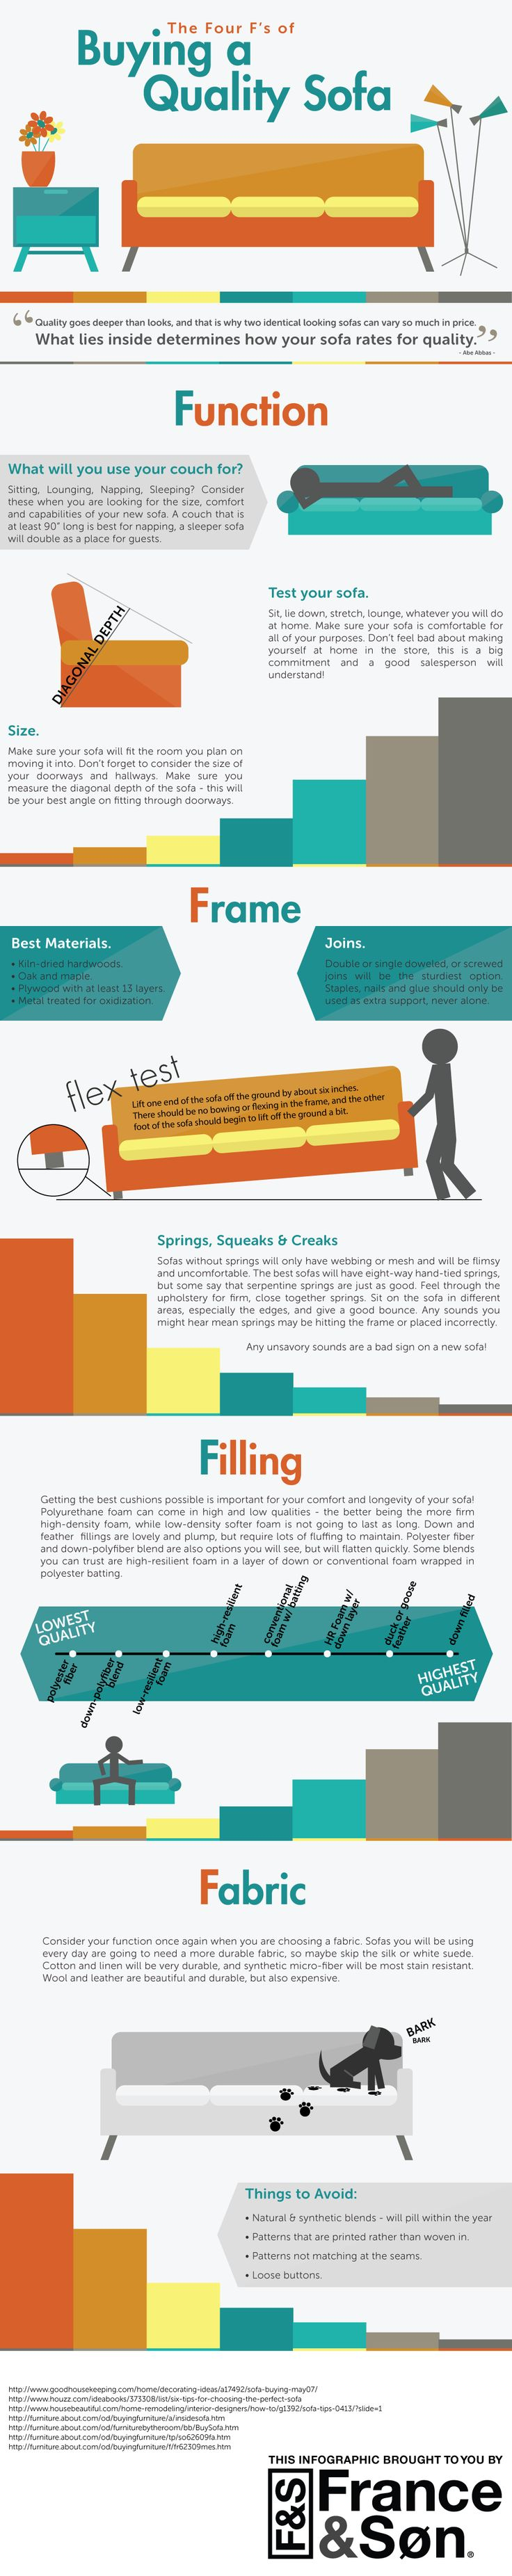 In the market for a new sofa? Check out this infographic for all the tips you'll need while you're shopping and searching.